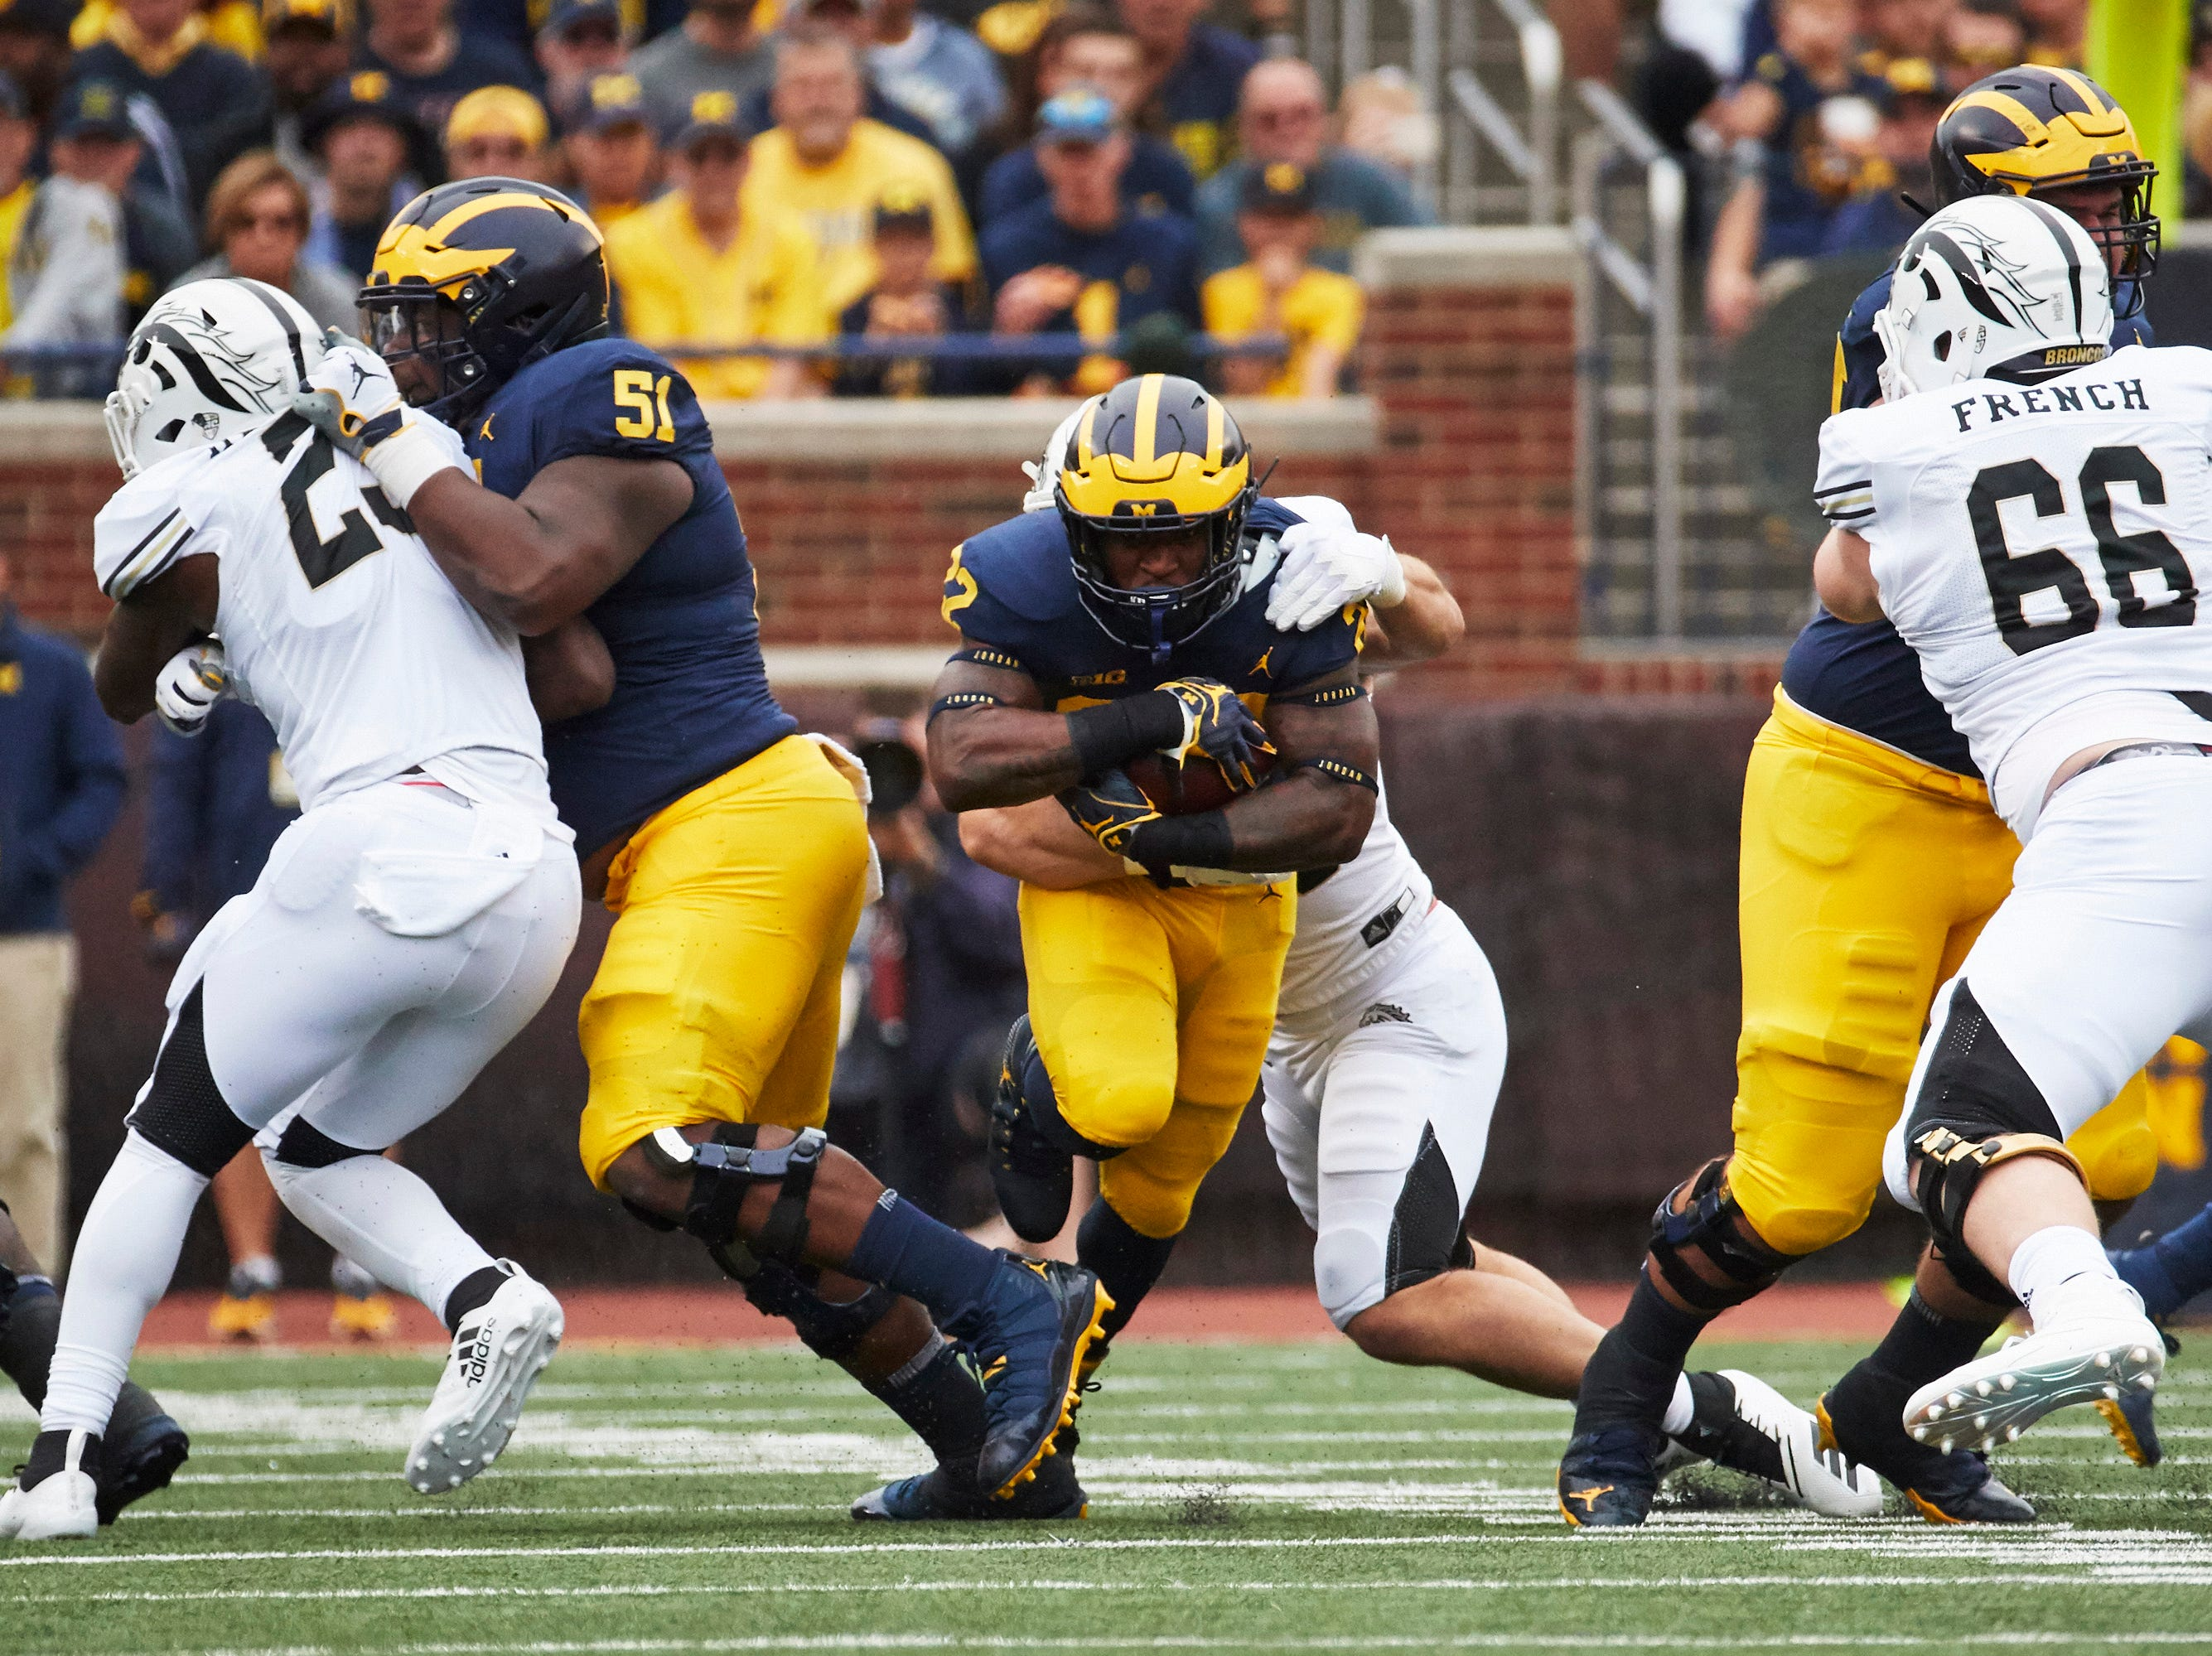 Sep 8, 2018; Ann Arbor, MI, USA; Michigan Wolverines running back Karan Higdon (22) breaks a tackle in the first half against the Western Michigan Broncos at Michigan Stadium. Mandatory Credit: Rick Osentoski-USA TODAY Sports